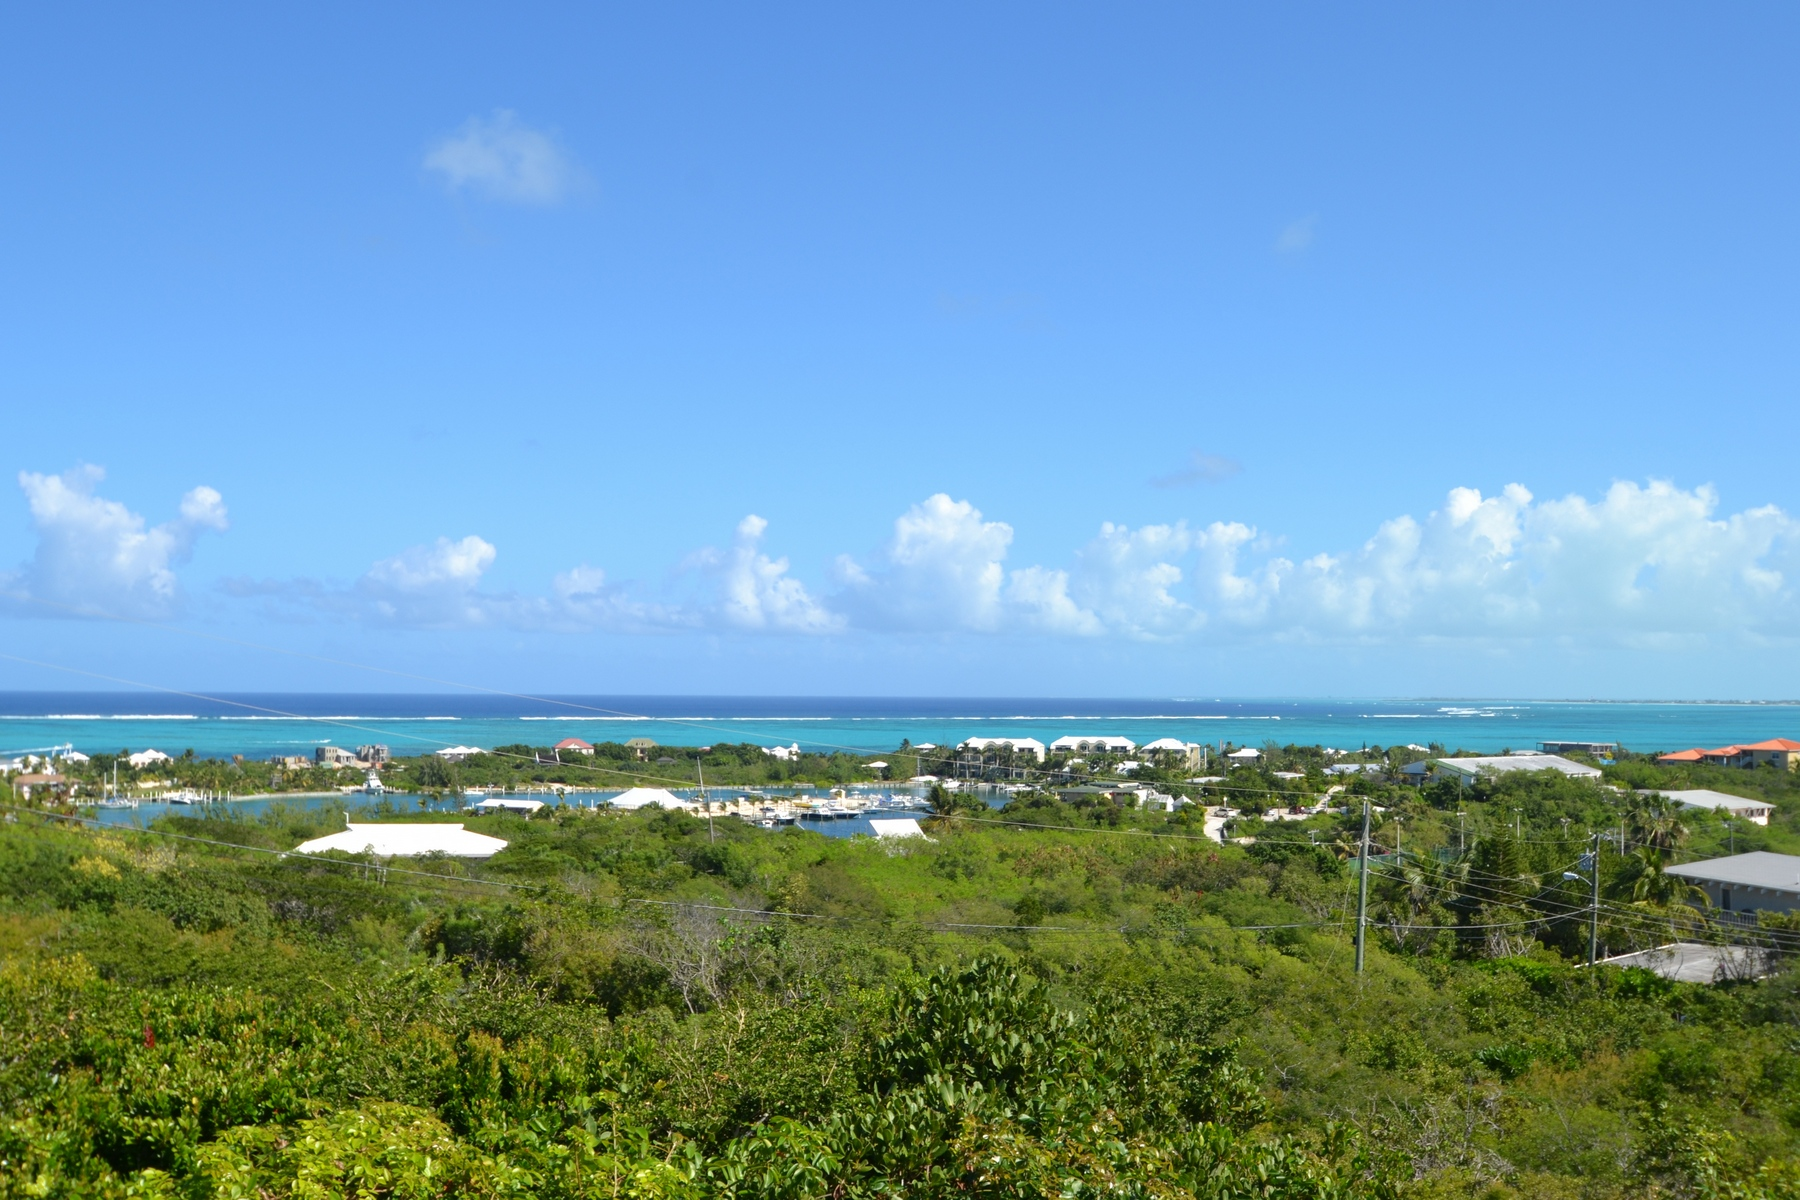 Single Family Home for Sale at 14 Blue Vista Court Turtle Cove, Providenciales, Turks And Caicos Islands